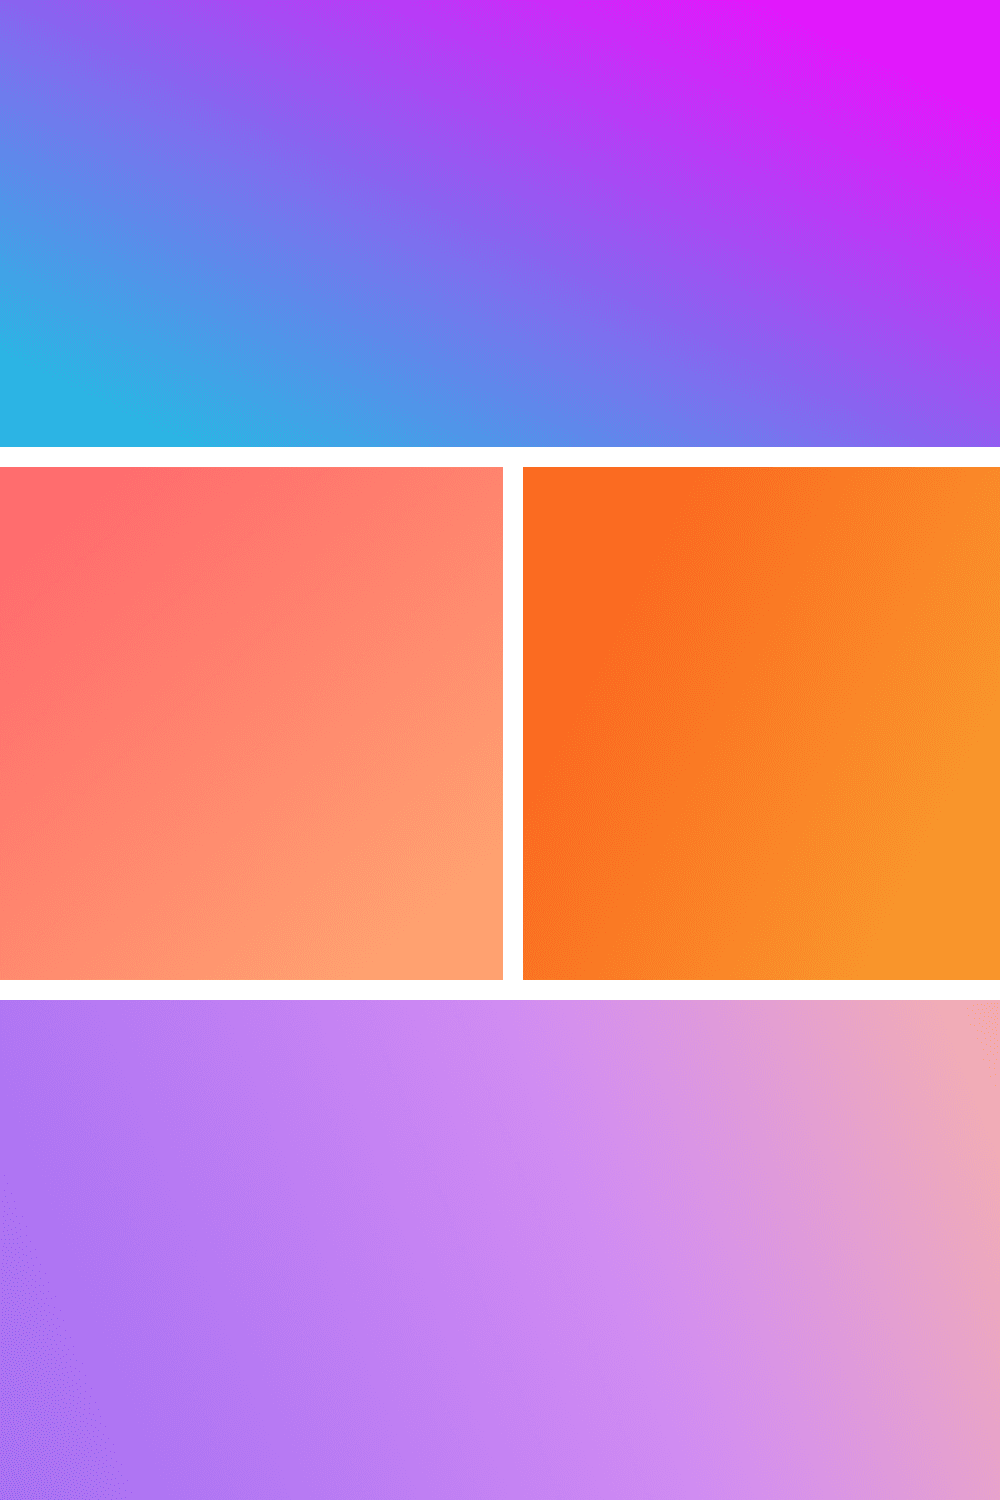 Pastel and calm colors are presented through a gradient.